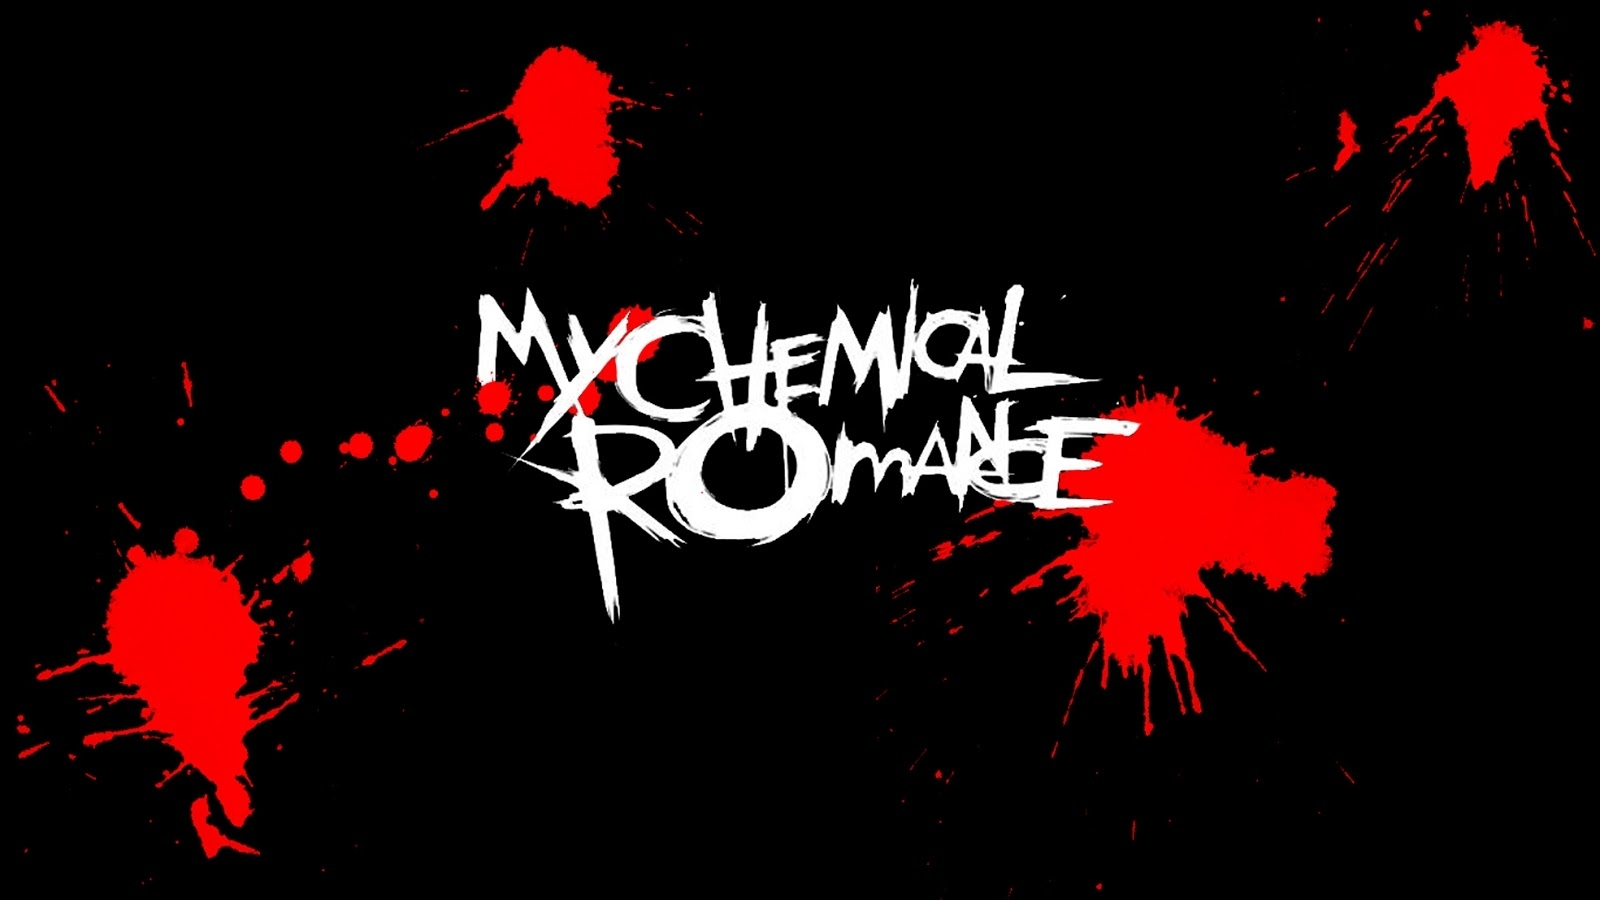 emo bandzzzz (mostly brendon urie) images my chemical romance